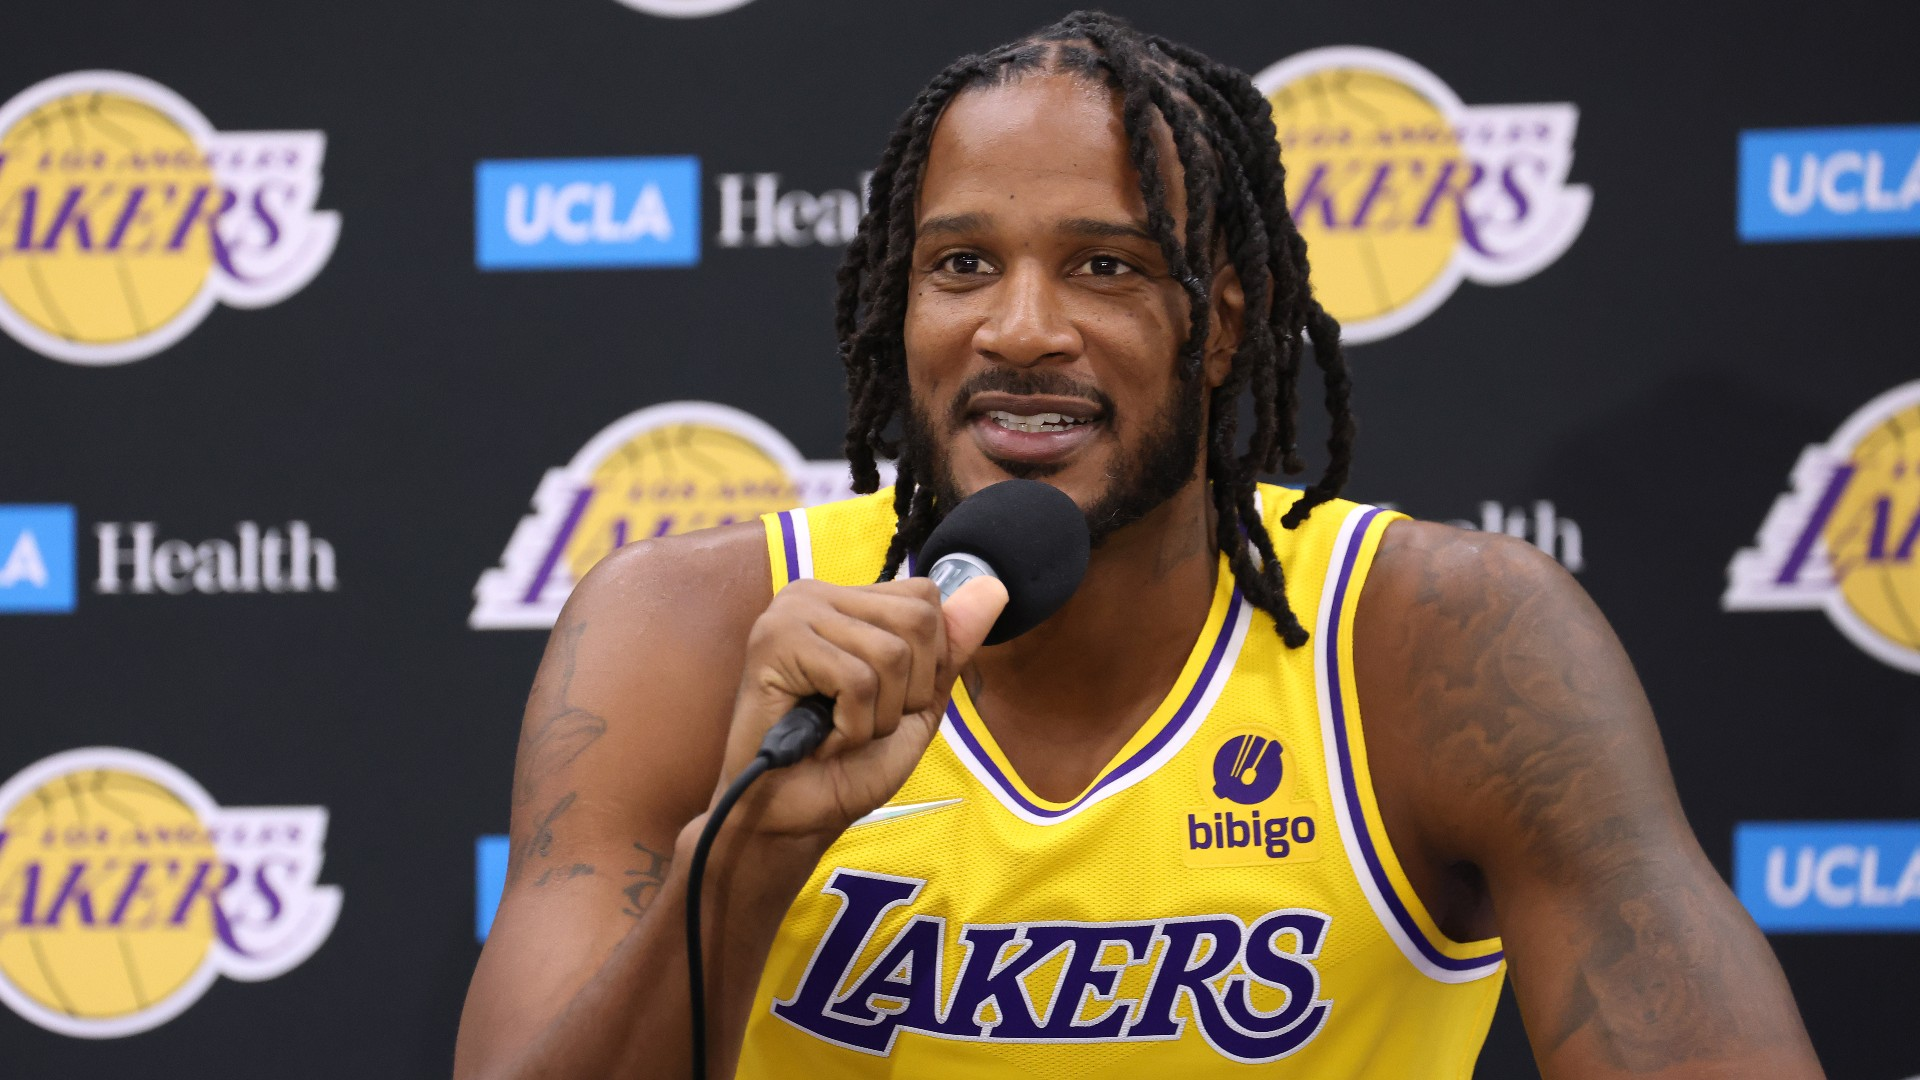 Trevor Ariza Injured. Out at least 8 weeks.